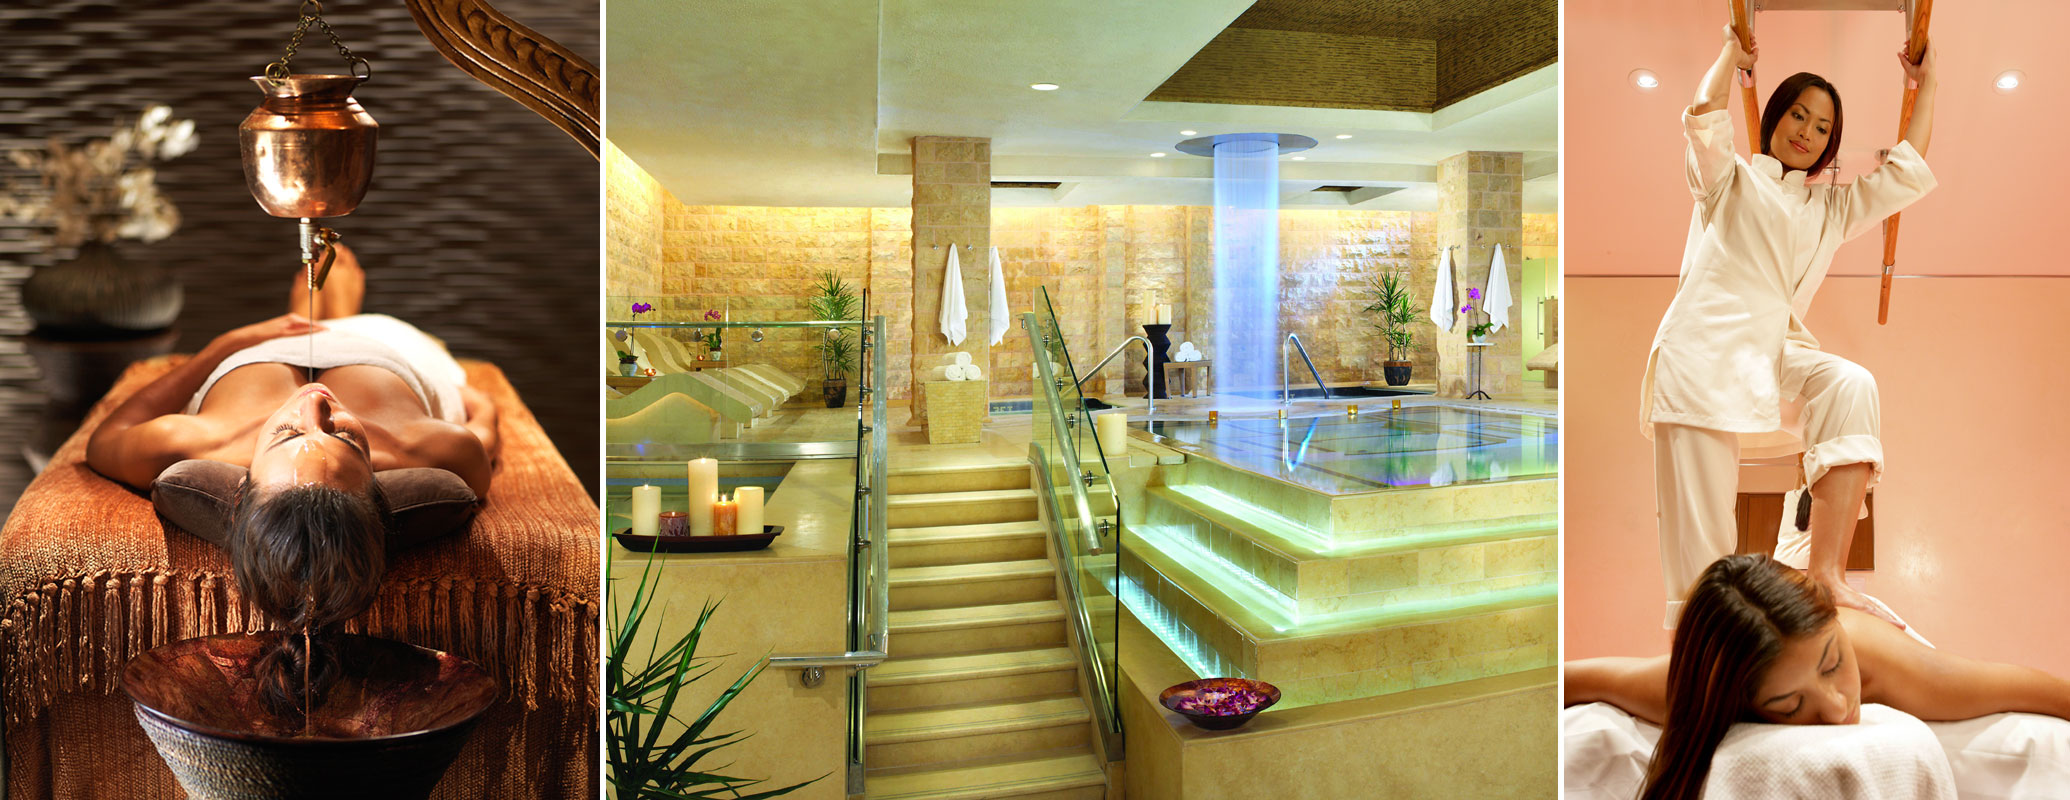 From left: Shirodhara and the Rom baths at Qua Baths & Spa, alng with Asiastu Oriental Bar Thearapy at Spa Bellagio.